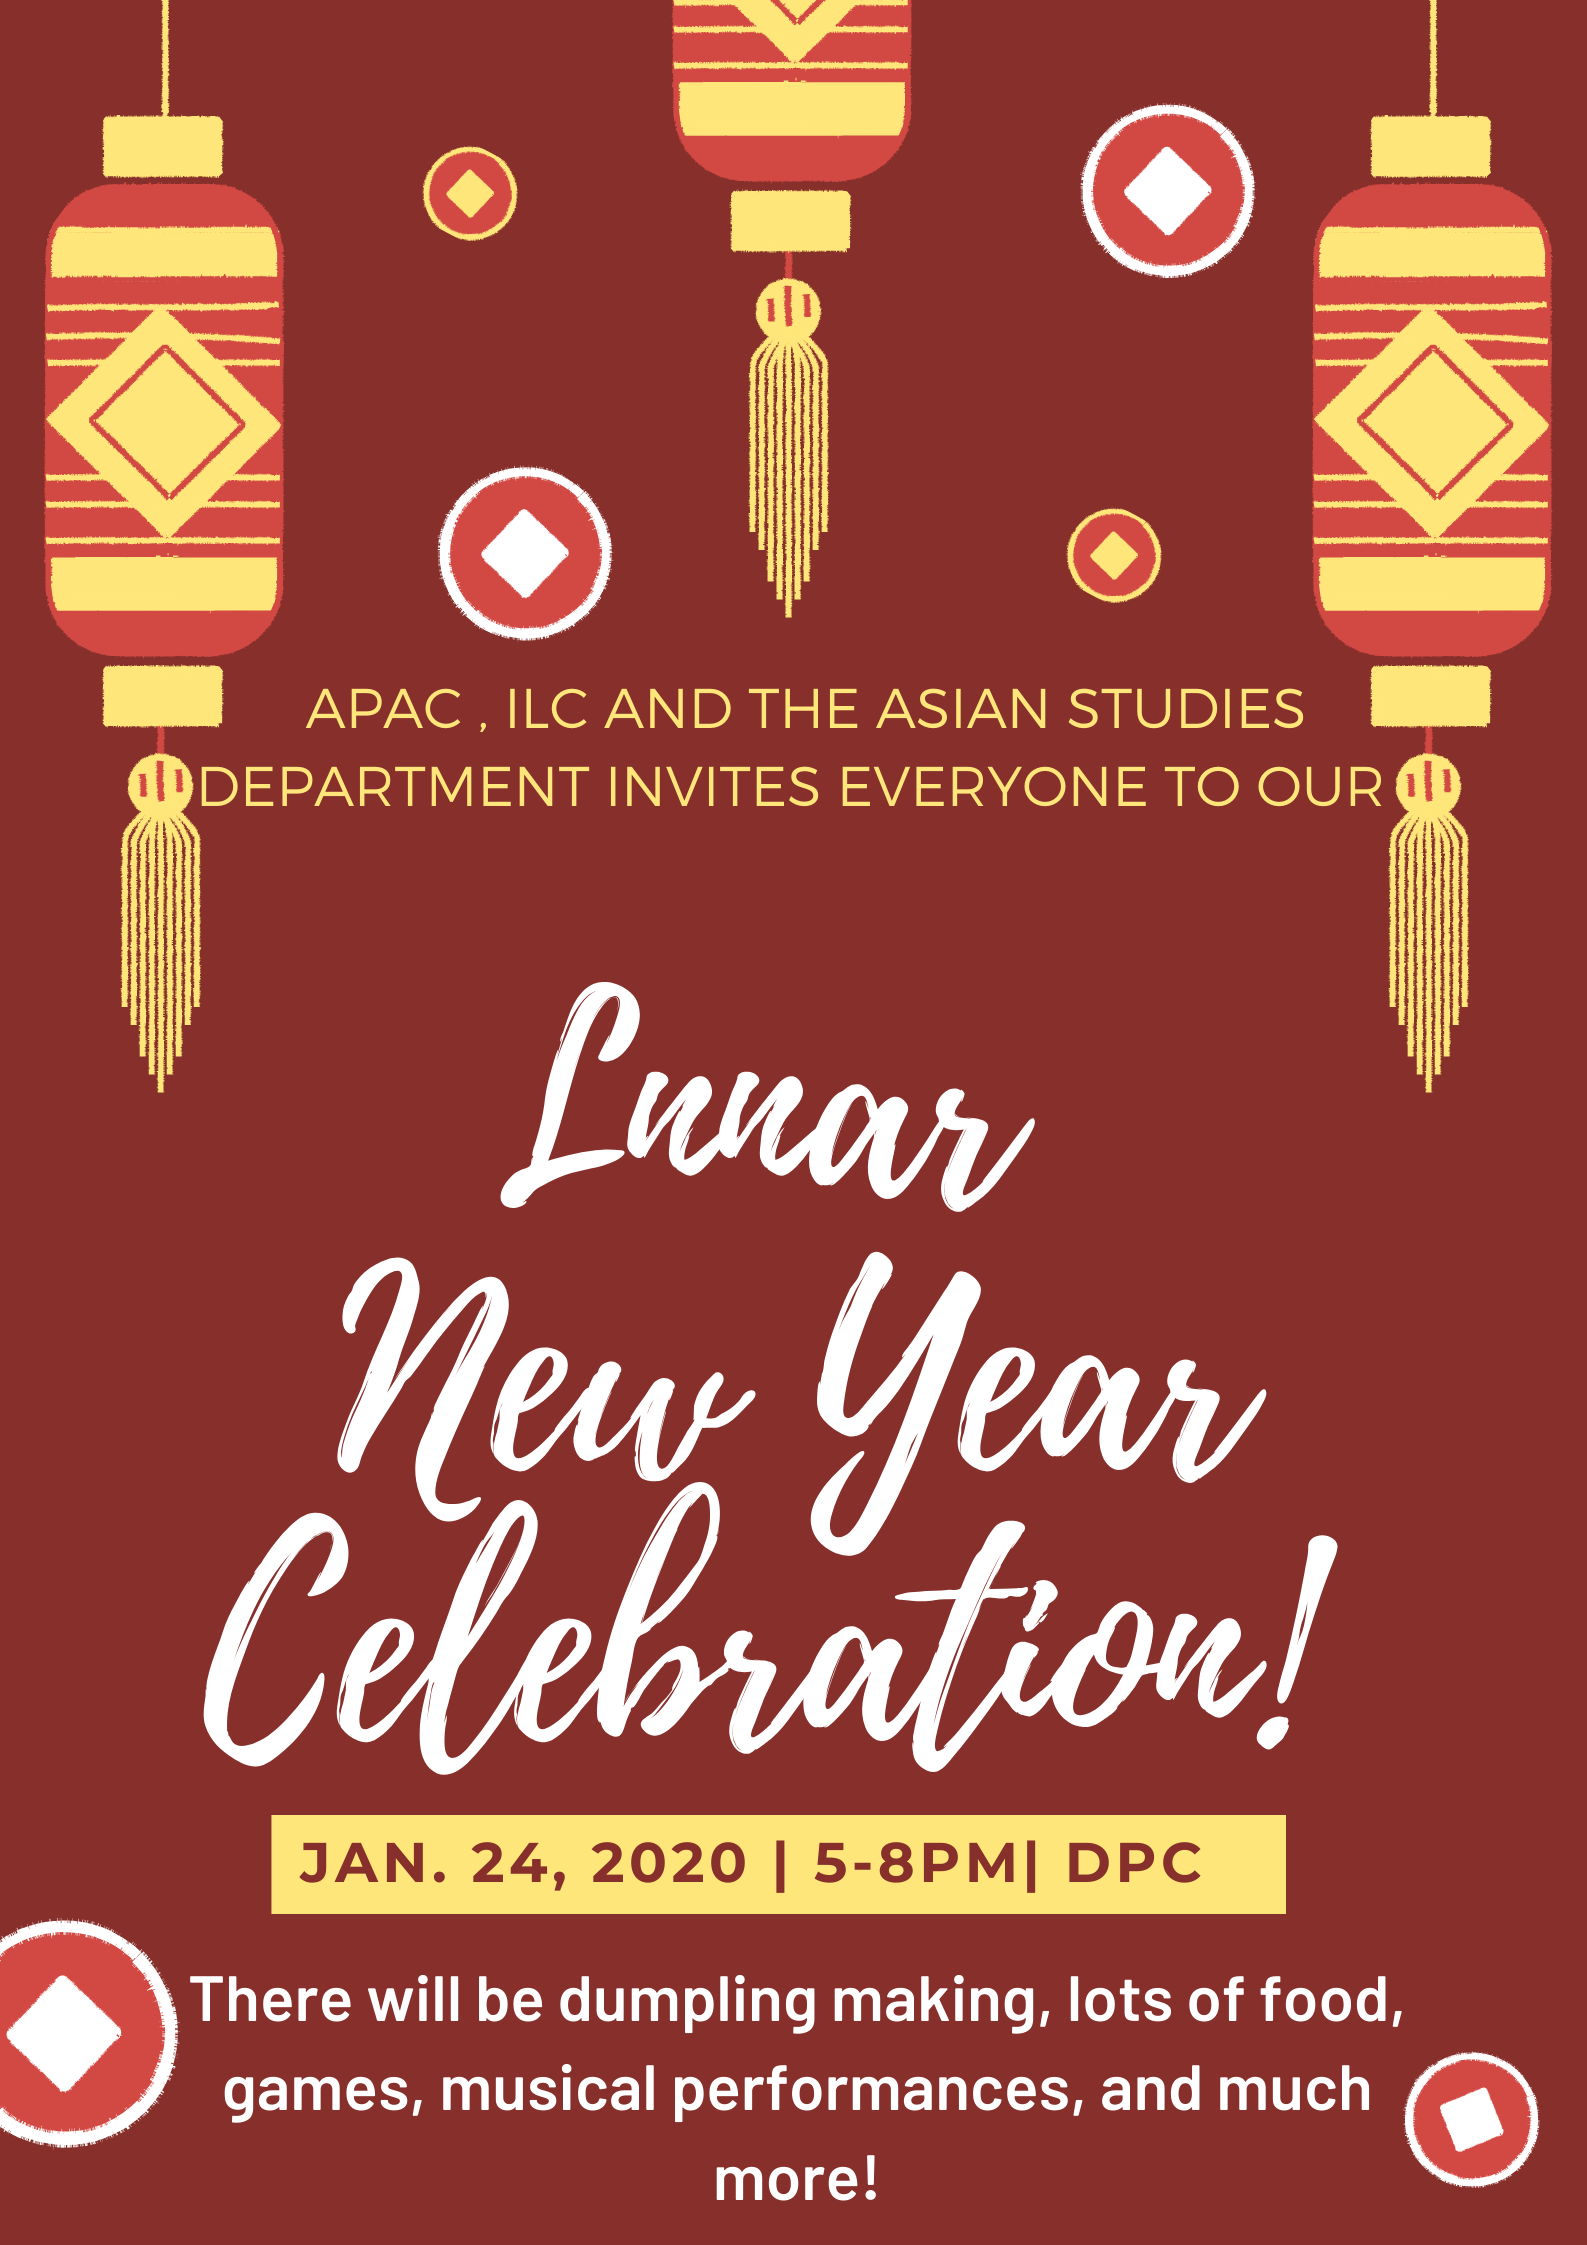 Red flyer with red Chinese paper lanterns that reads APAC, ILC and the Asian Studies Department invites everyone to our Lunar New Years Celebration. Friday January 24th 2020 from 5-8pm in DPC. There will be dumpling making, lots of food, games musical performances, and much more!